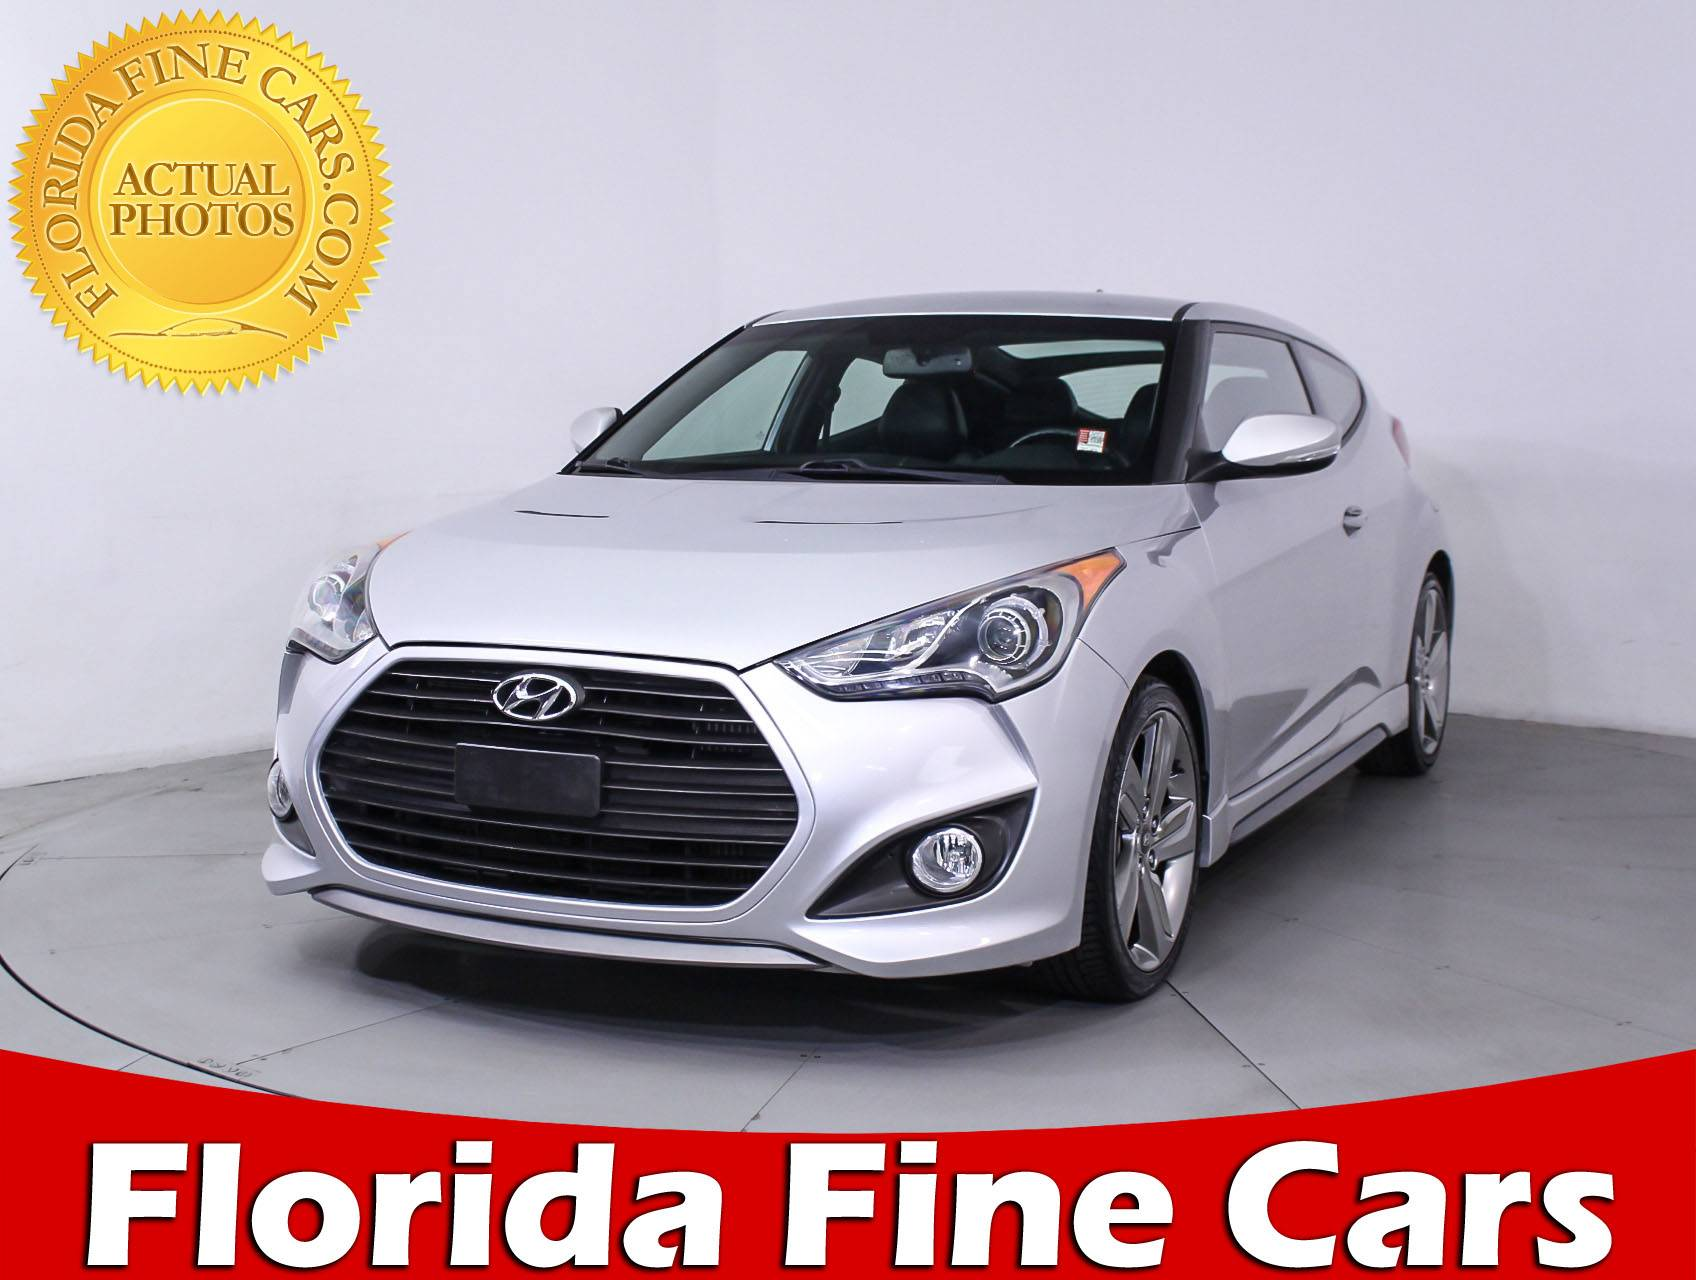 Used 2013 HYUNDAI VELOSTER Turbo Hatchback For Sale In MIAMI, FL | 85681 |  Florida Fine Cars